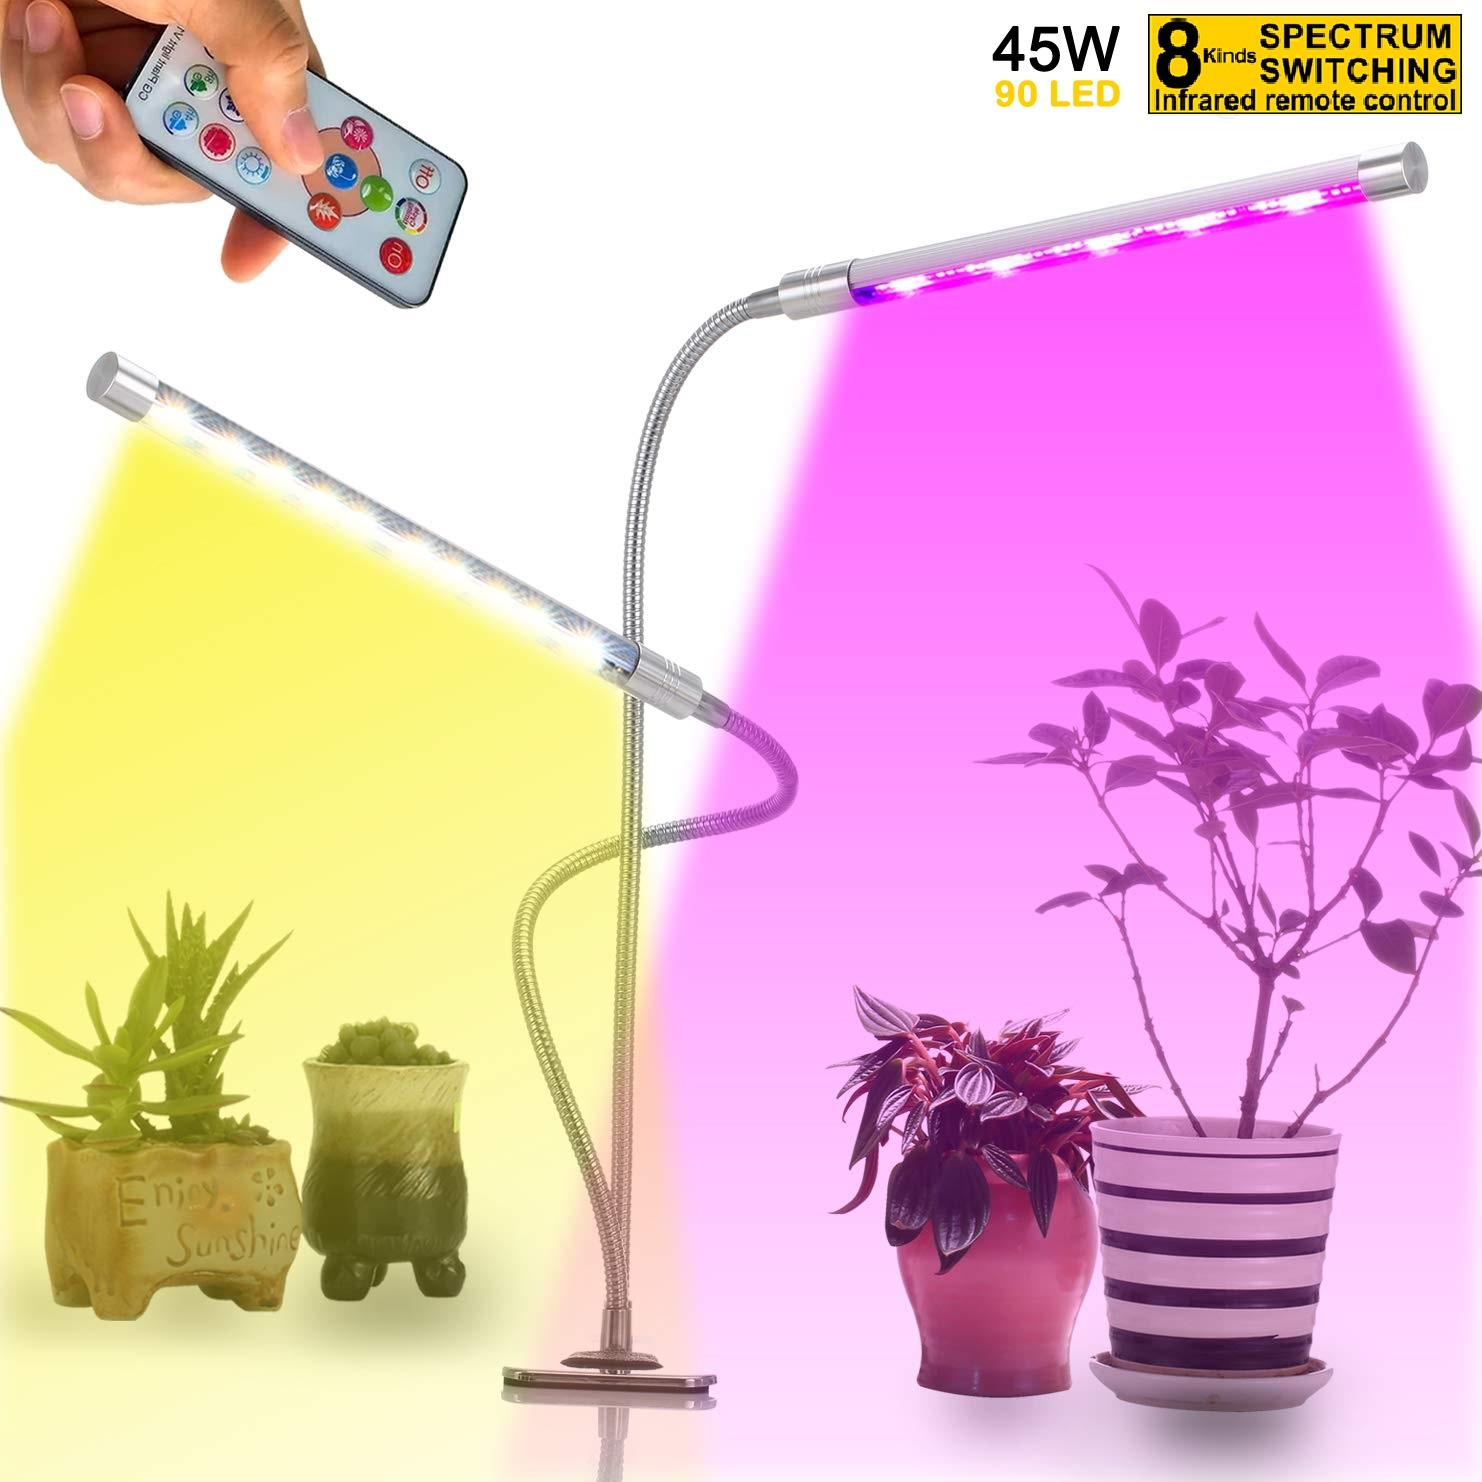 Plant Grow Lights for Indoor Plants with IR Remote Control, 45W LED Auto On/Off Growing Light, Flexible Gooseneck Dual Head for Seeding Flowering